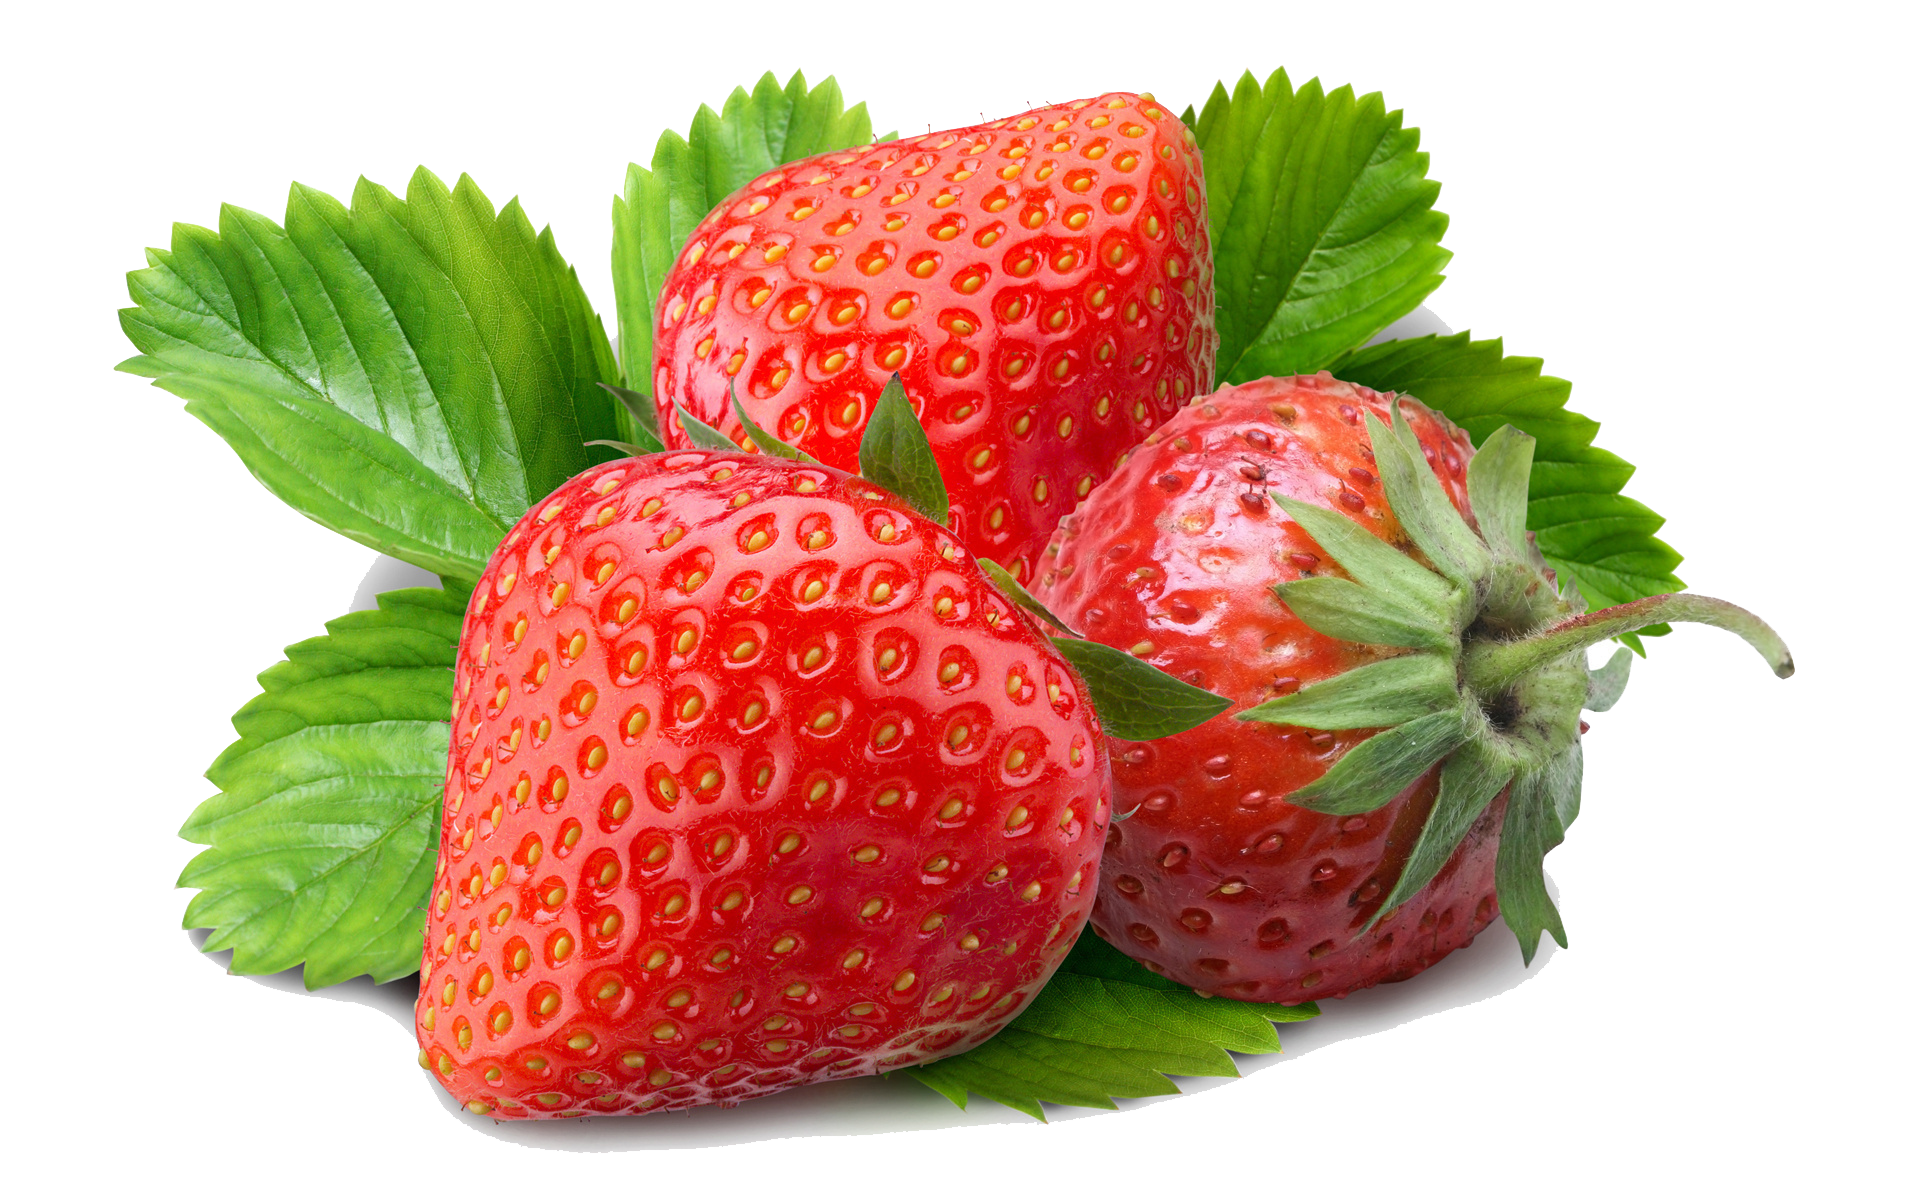 Strawberry Download Png PNG Image